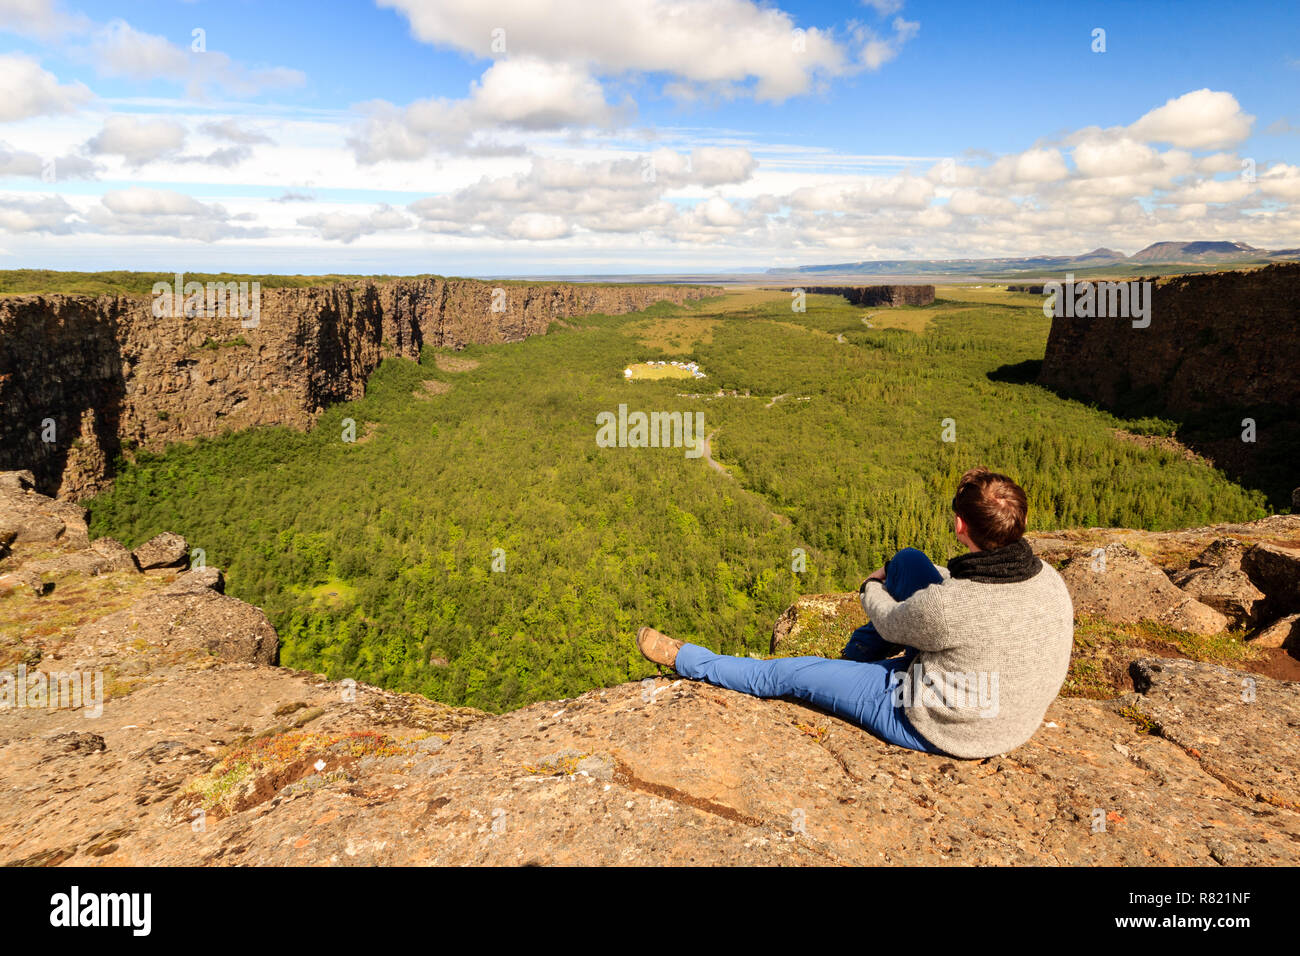 Hiker on the edge of Asbyrgi canyon in Iceland enjoying the view / Wanderer an der Kante der Asbyrgi Schlucht in Island Stock Photo